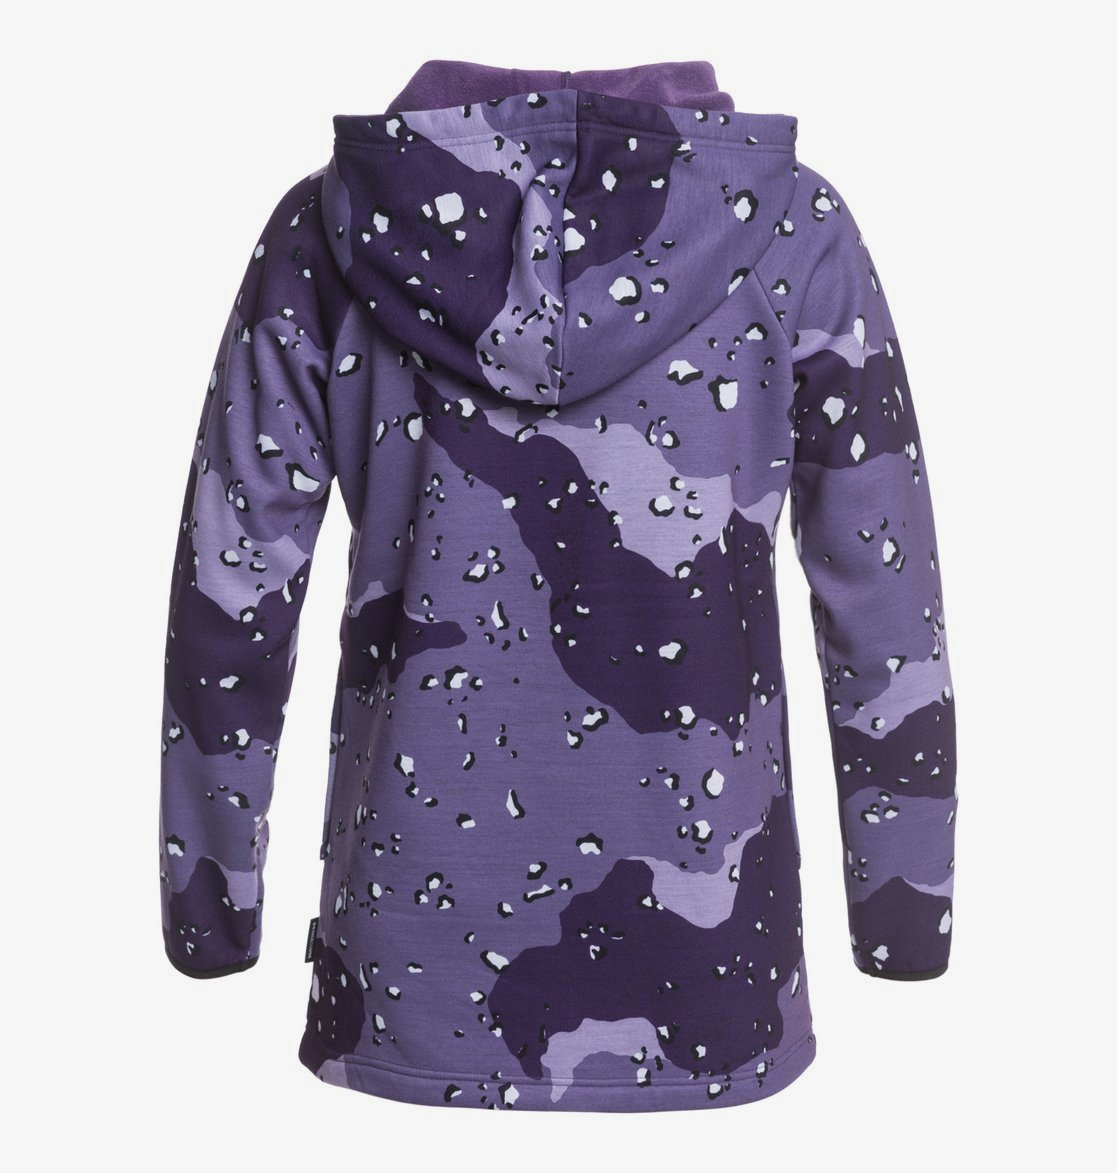 ДЖЕМПЕР SALEM FLEECE J OTLR XPPS Фиолетовый